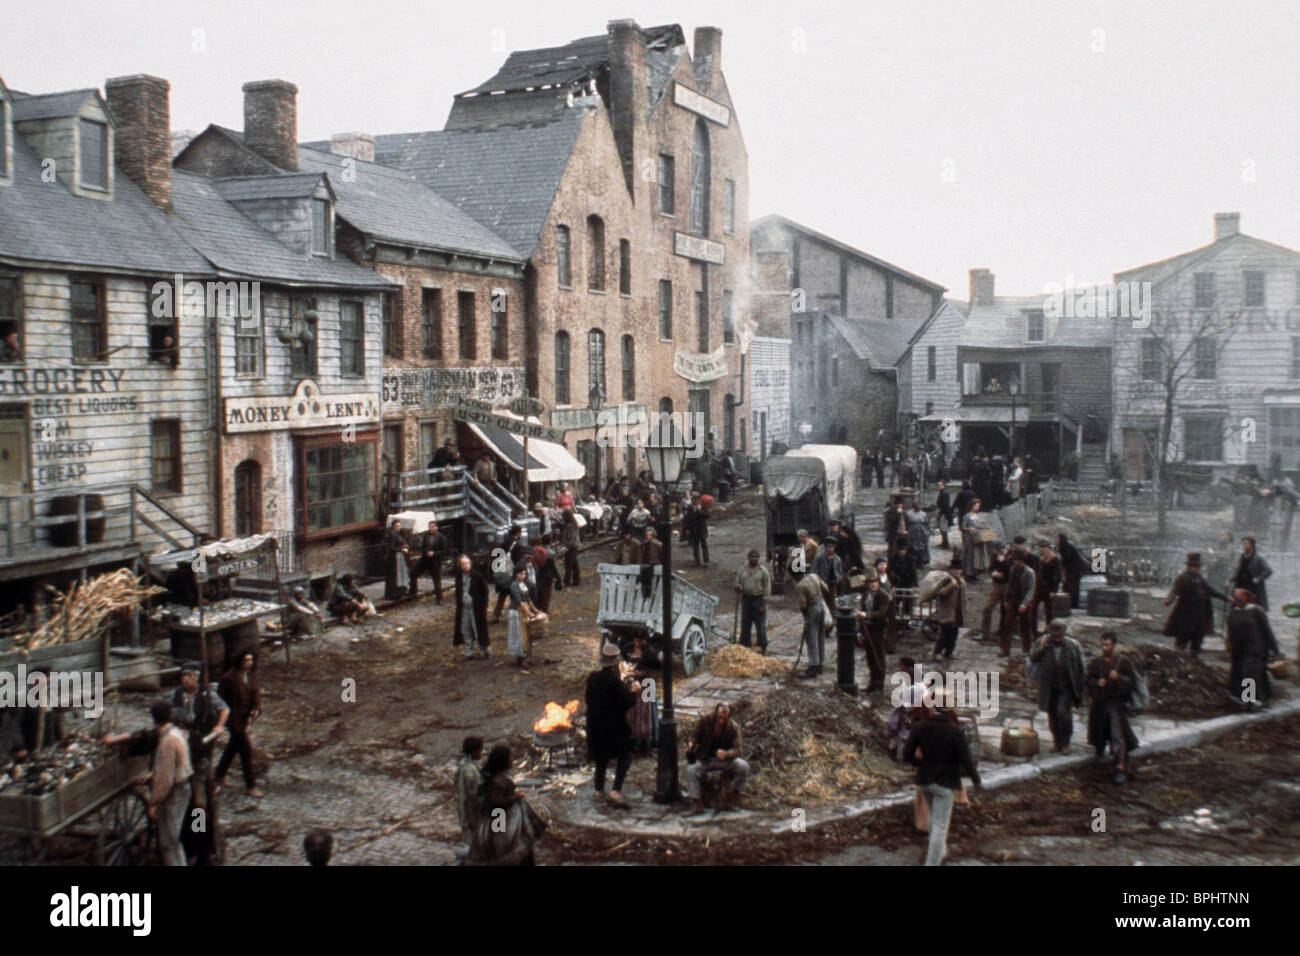 TOWN SCENE GANGS OF NEW YORK (2002) - Stock Image